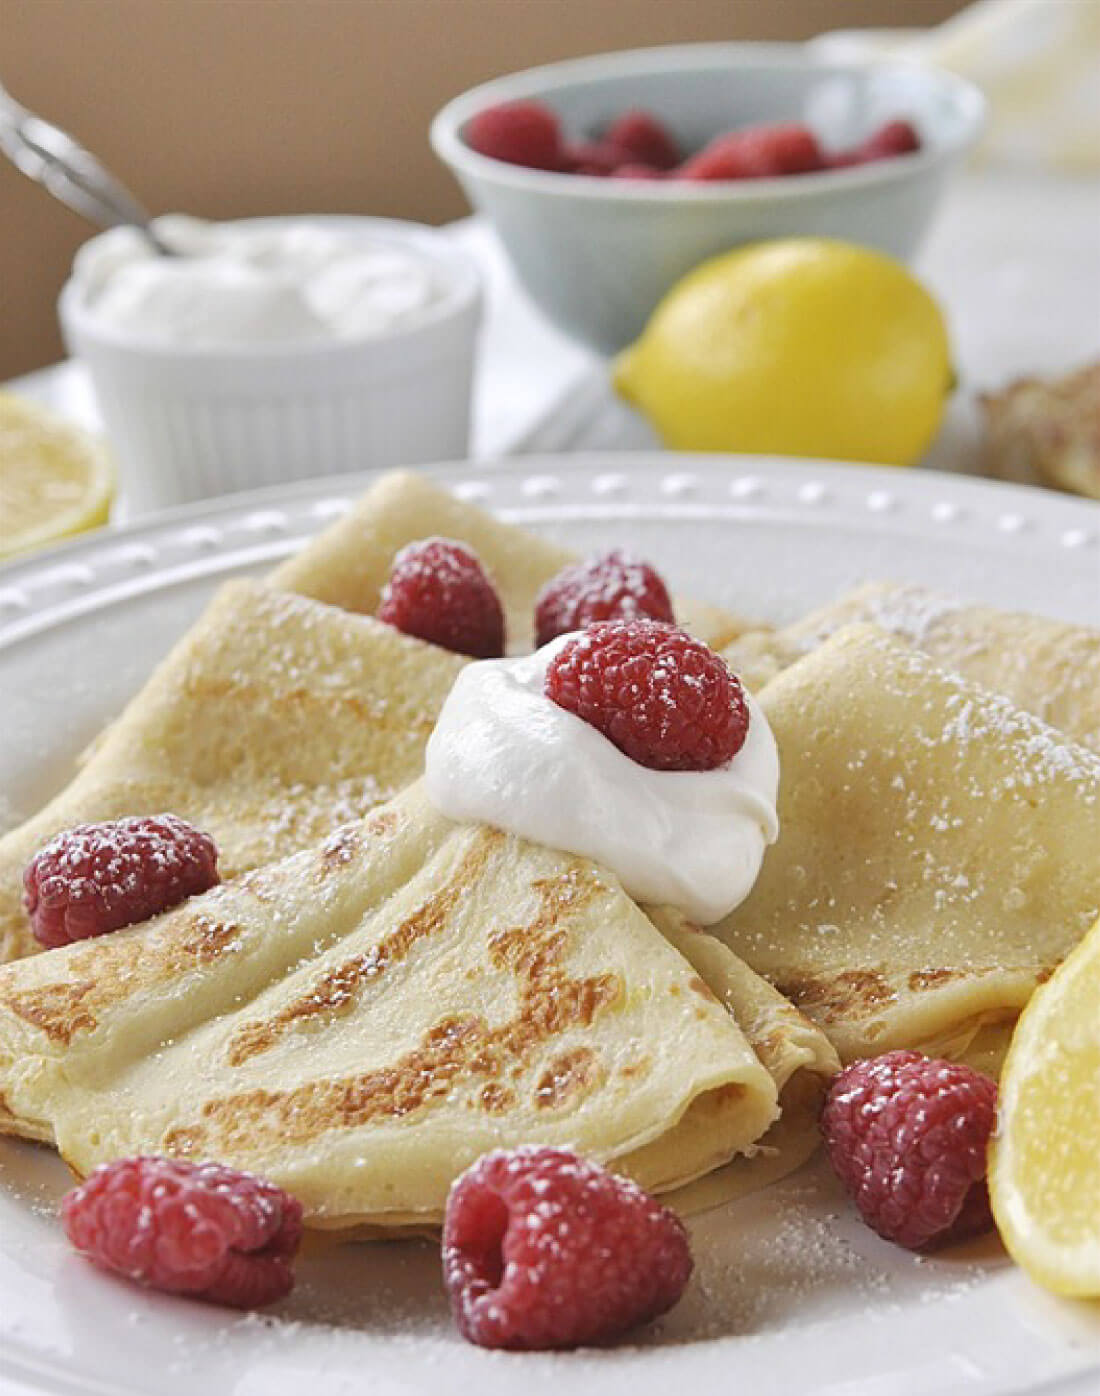 Swedish Pancakes - a cross between crepes and pancakes, this pancake recipe is one you'll go back to again and again.